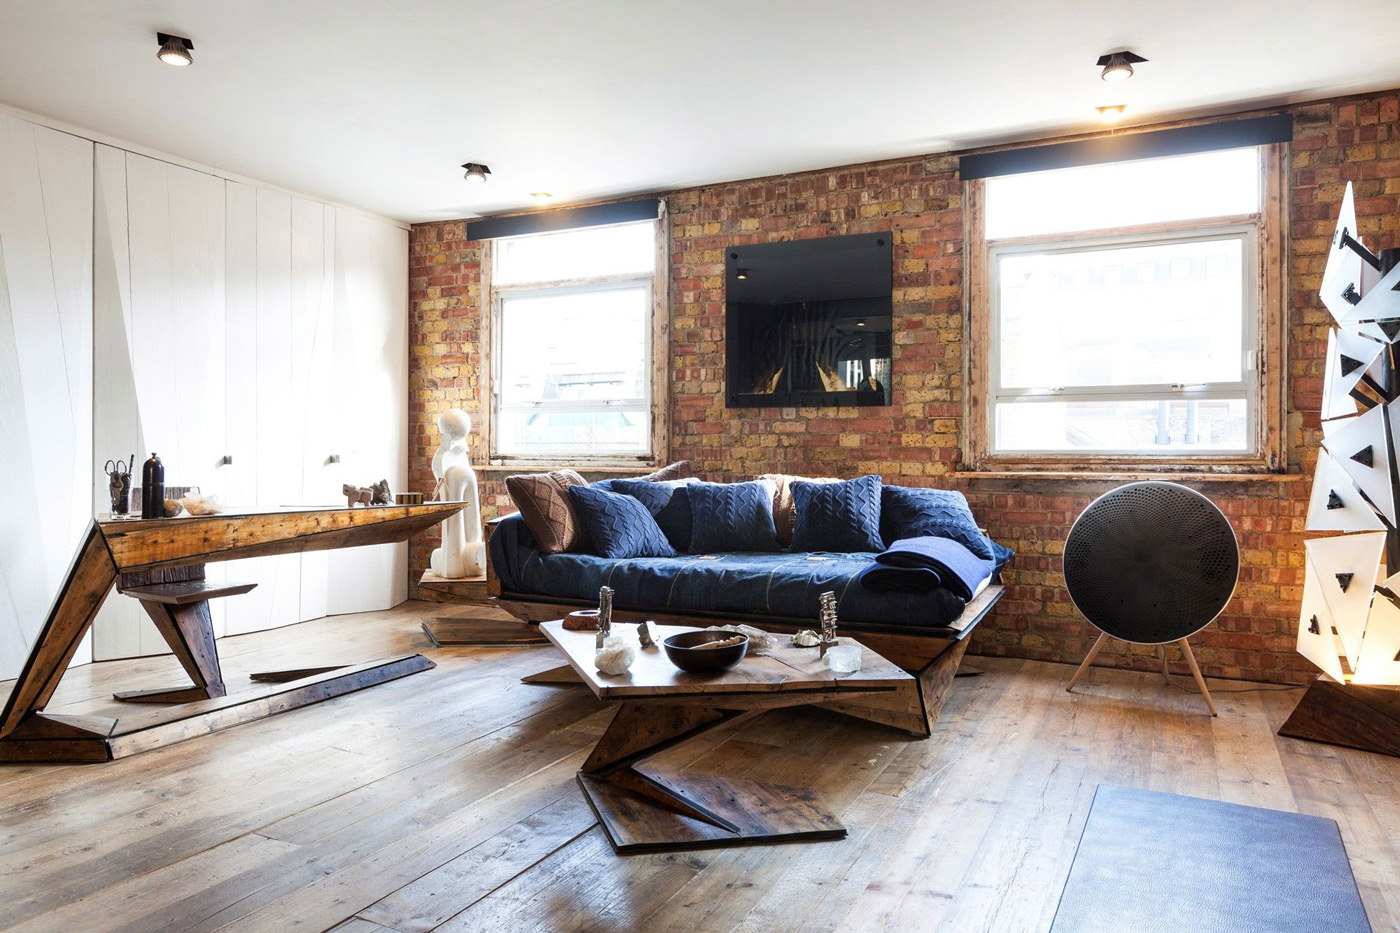 Coffee Table, Sofa, Wood Desk, Art, Archer Street Apartment in London, England